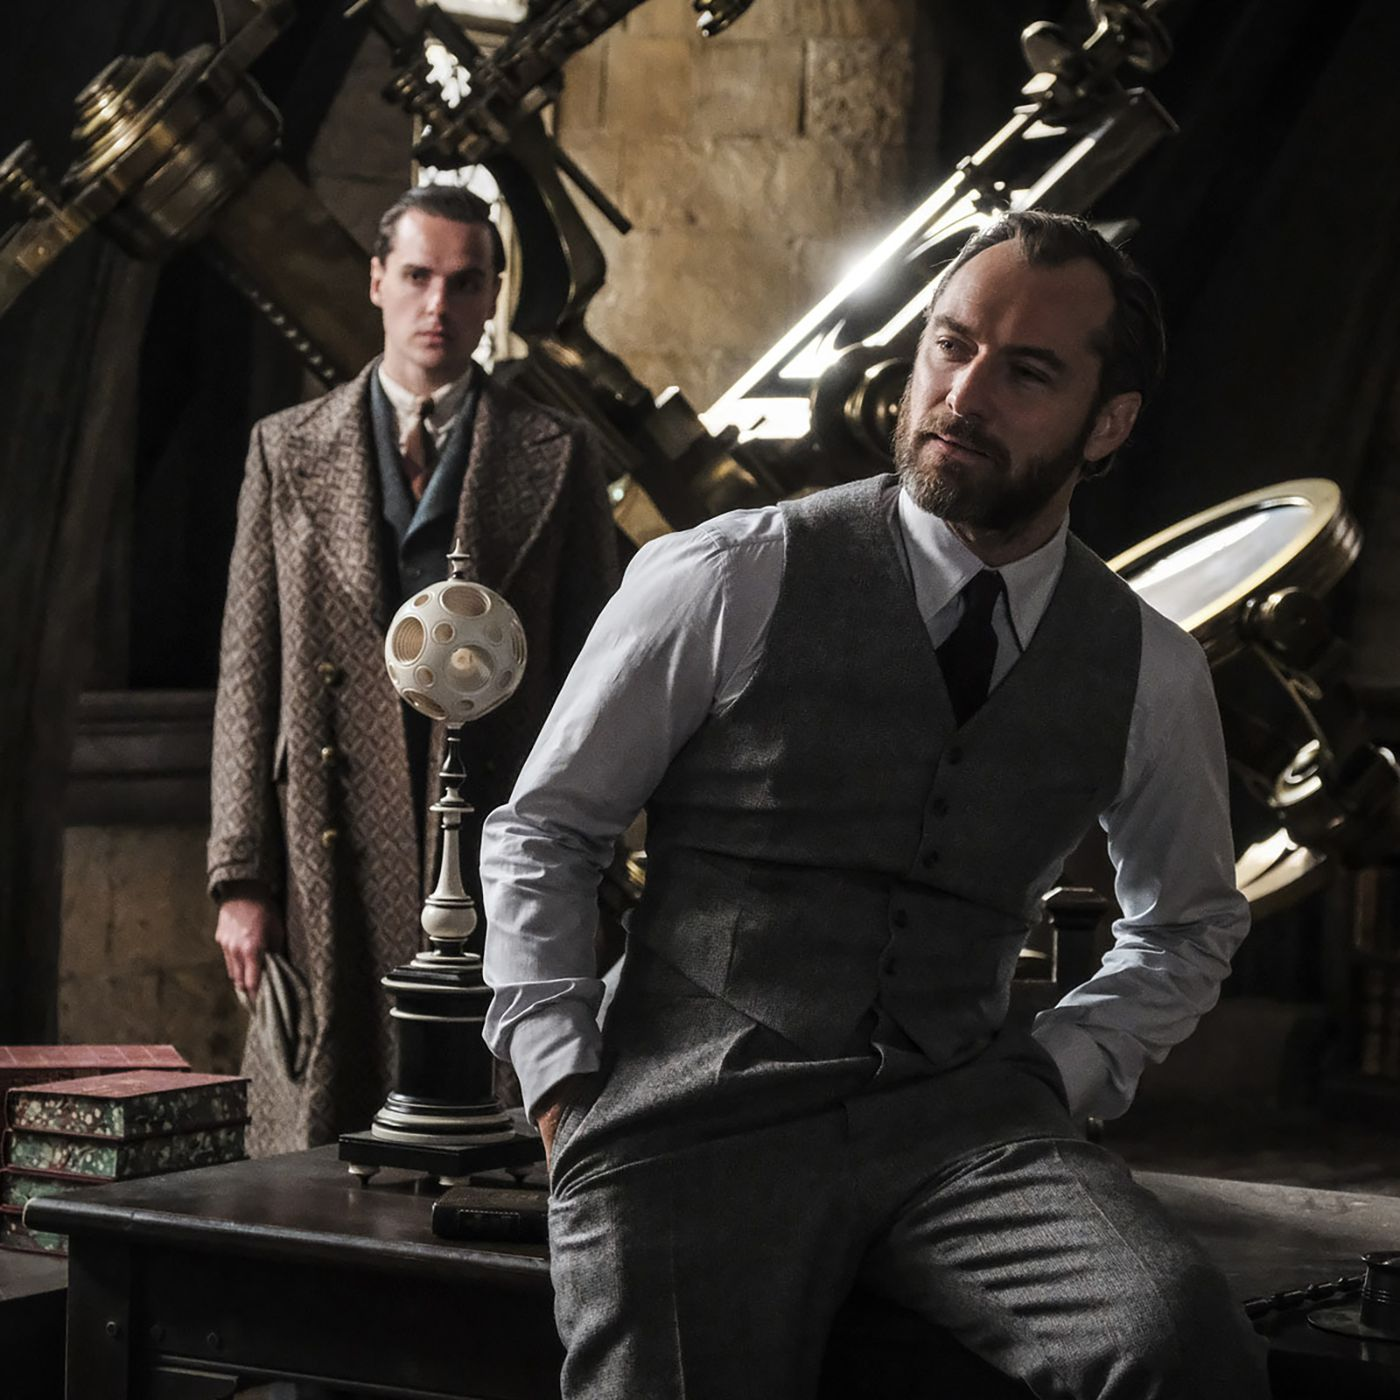 Fantastic Beasts The Crimes Of Grindelwald Trailer Teases A New